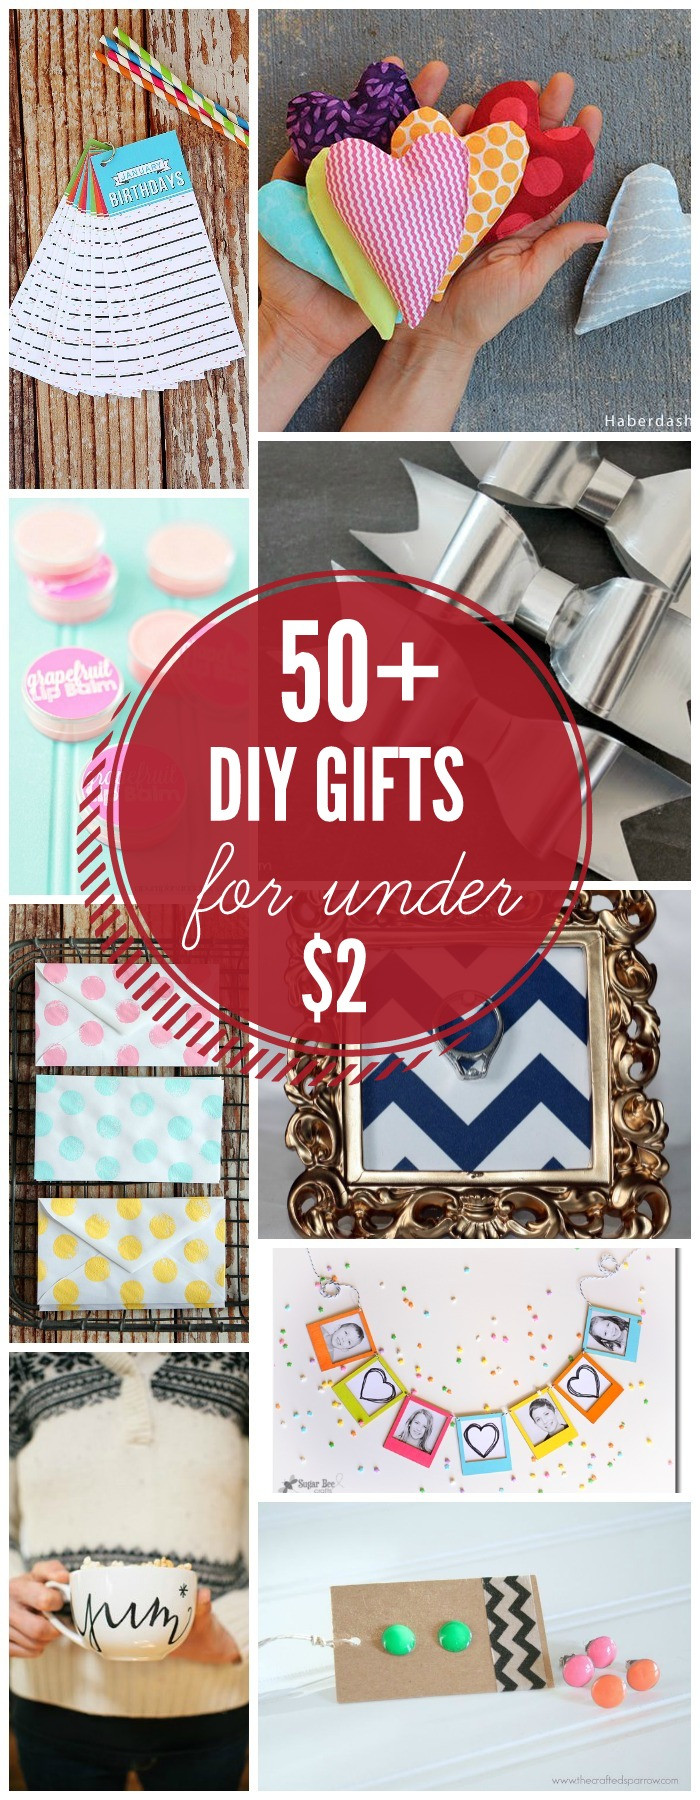 Best ideas about Top Gift Ideas . Save or Pin DIY Gifts Under $2 Now.